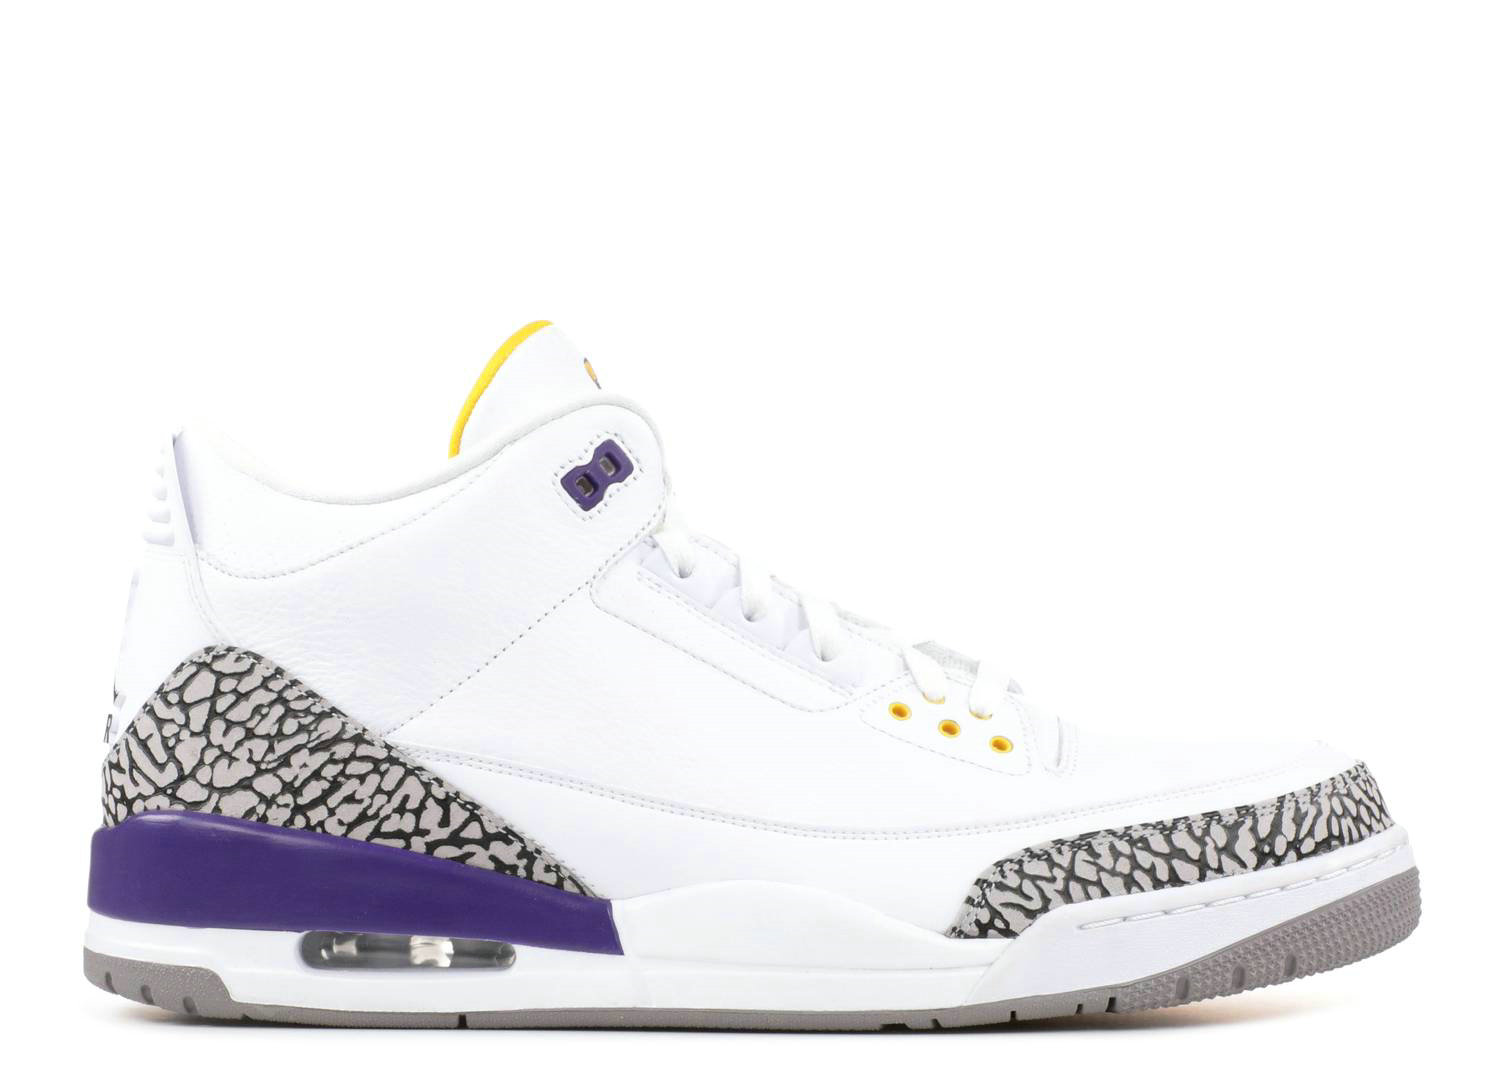 2021 Where To Buy Cheap Nike Air Jordan III 3 Retro White Purple Yellow Black Cement 136064-115 On VaporMaxRunning